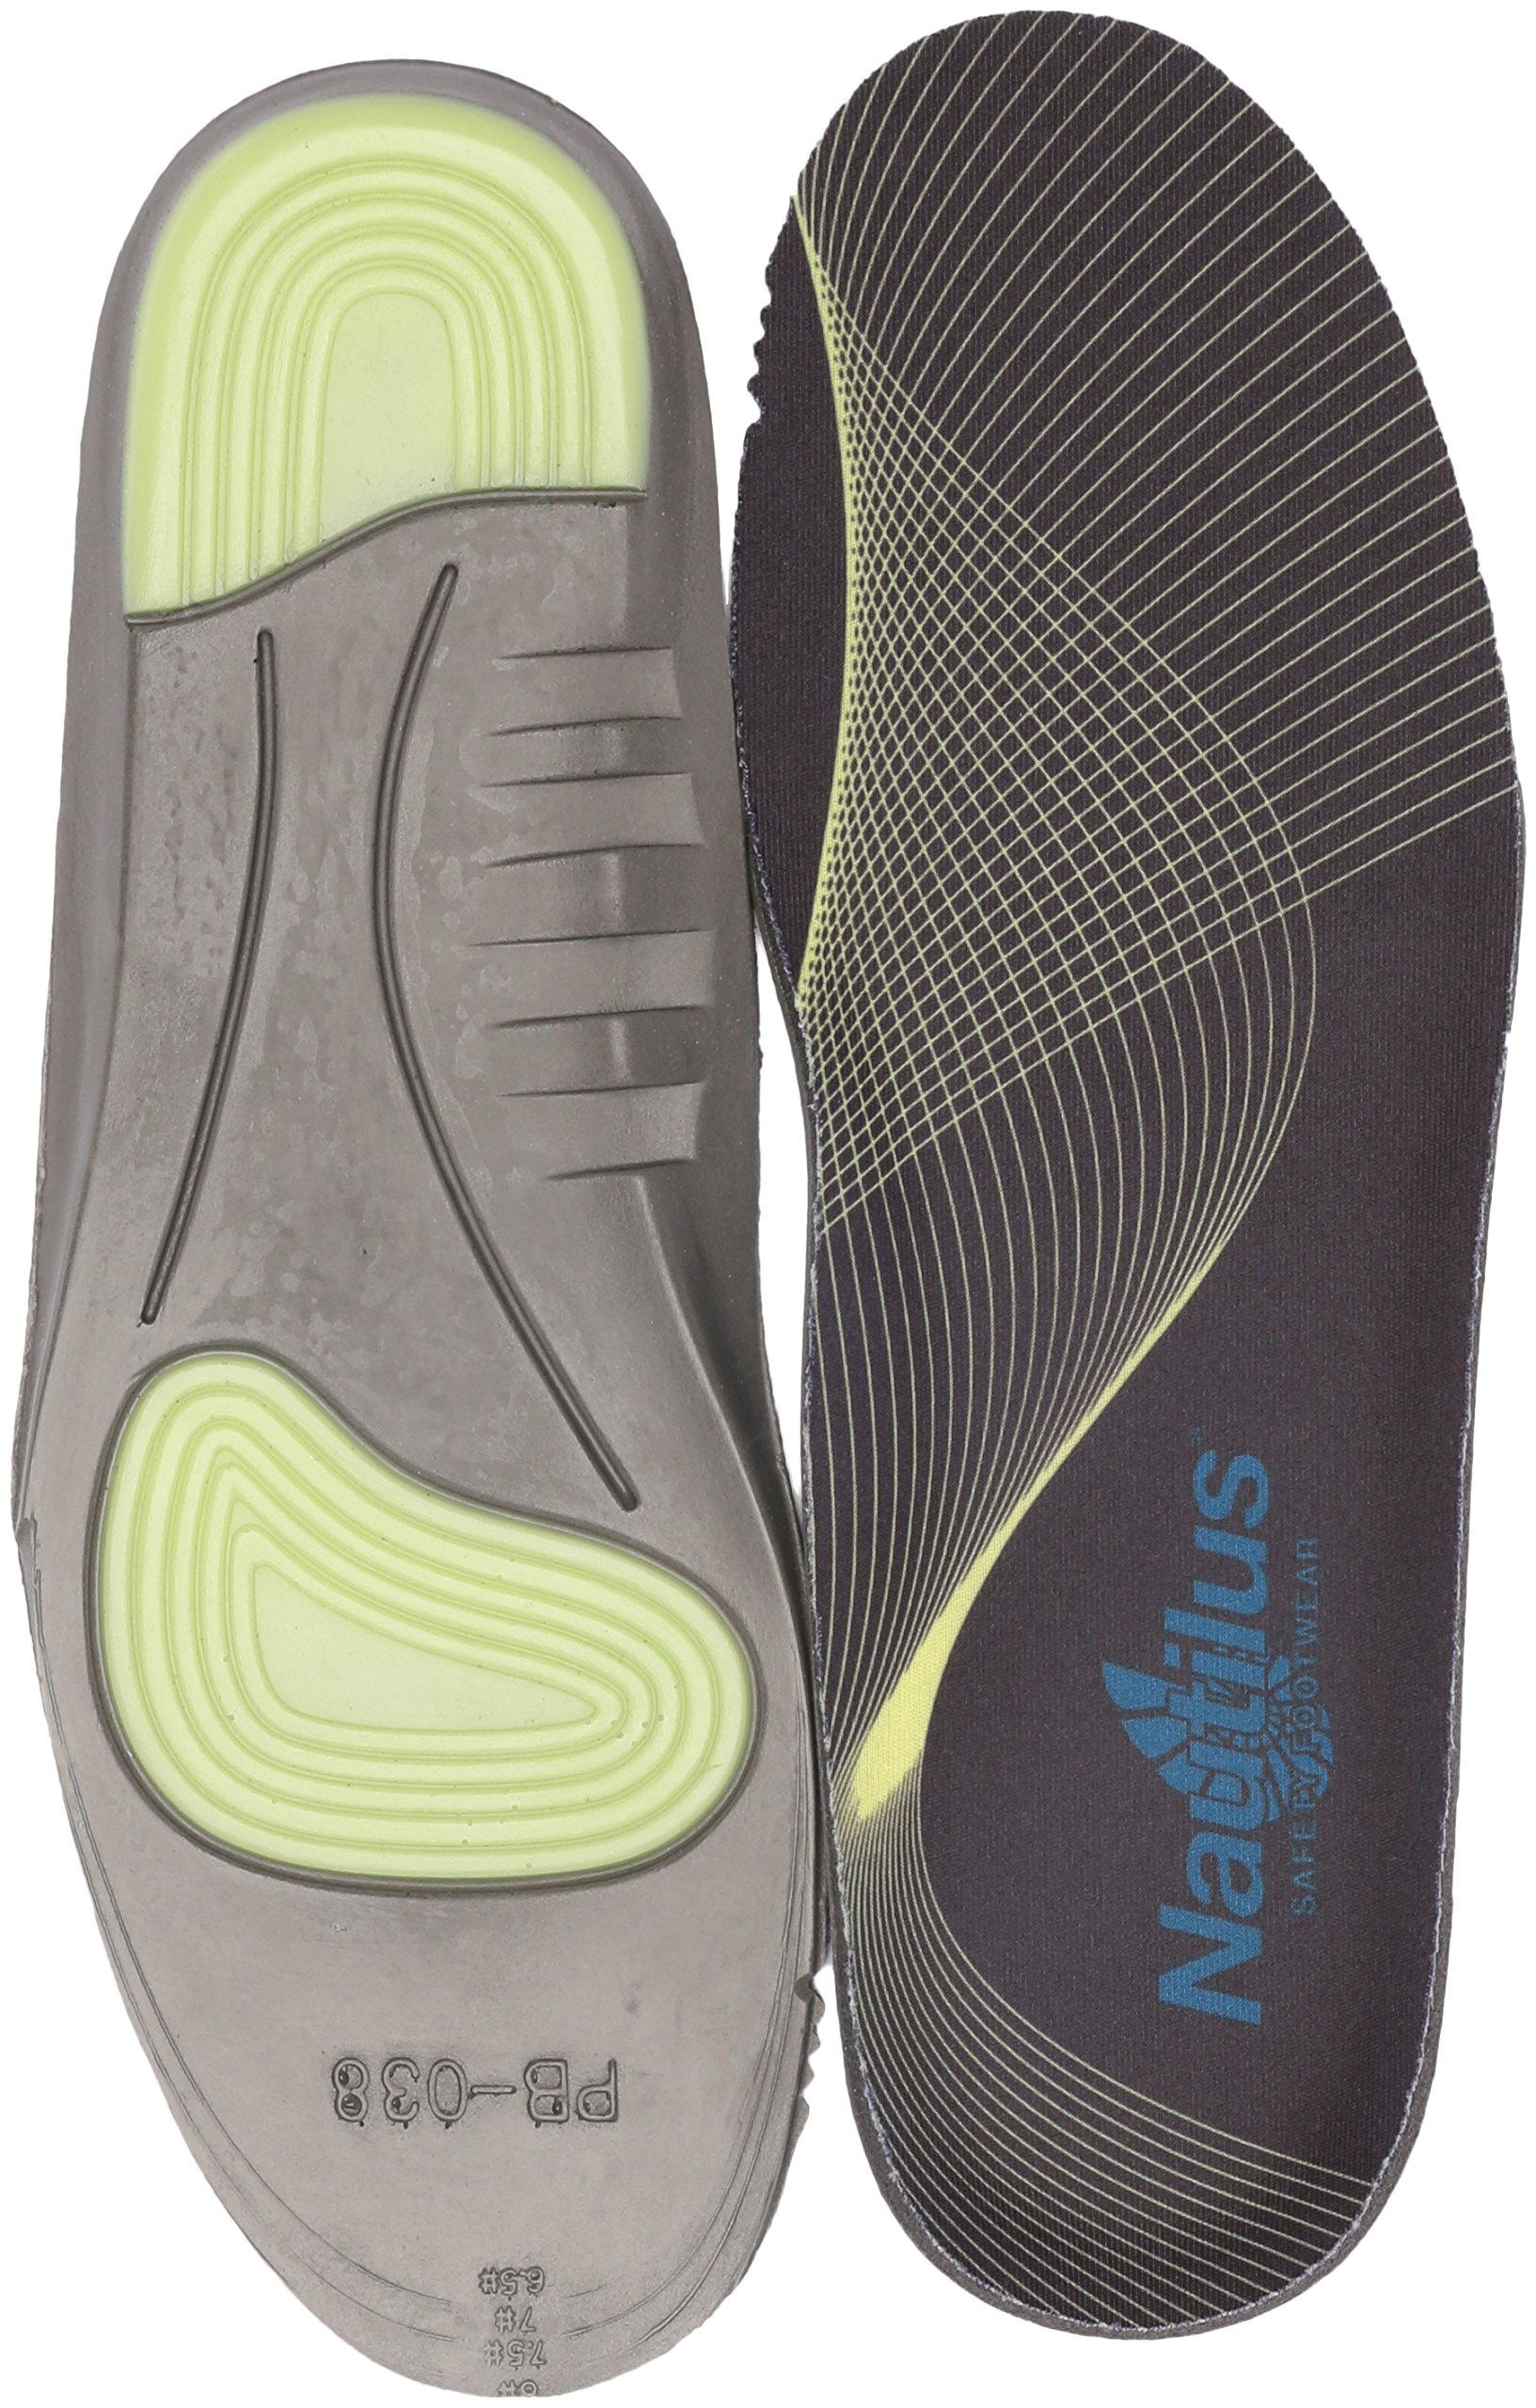 Nautilus Safety Footwear Women's Memory Foam and Gel Impact Insoles Health Care and Food Service Shoe, Black, X-Large/11-12 D US